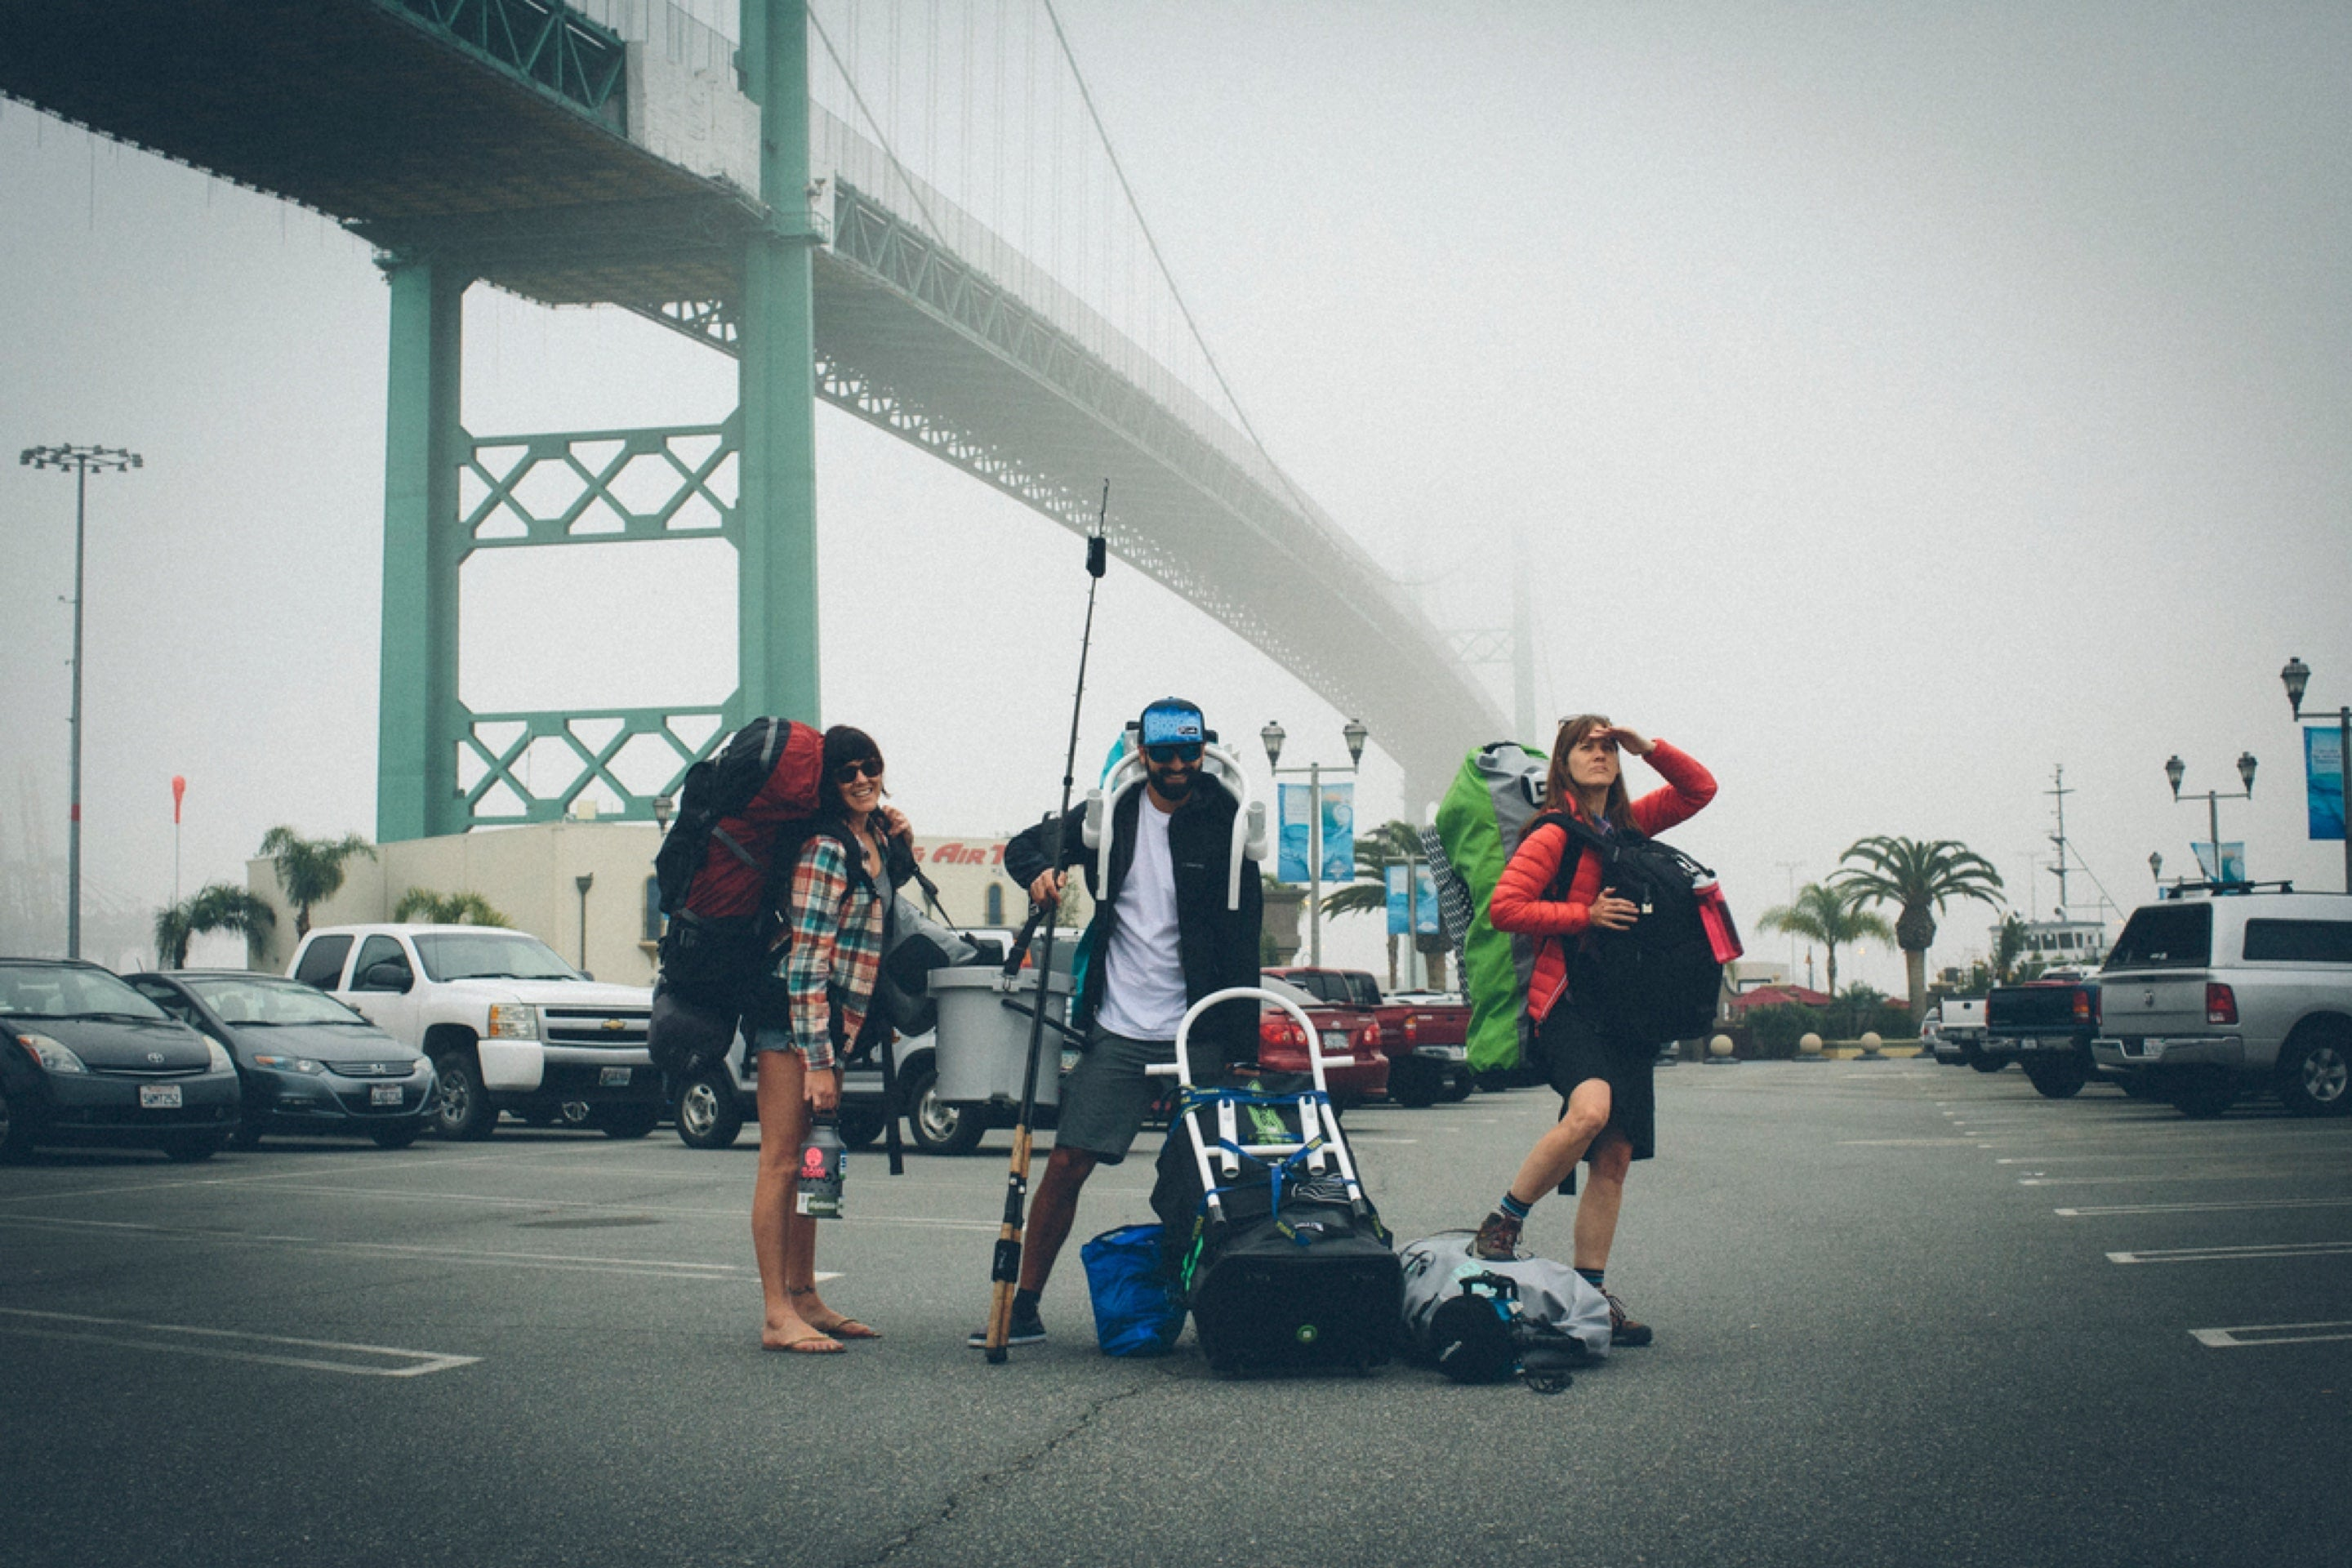 Group posing with their gear under Vincent Thomas Bridge, Los Angeles Harbor, California